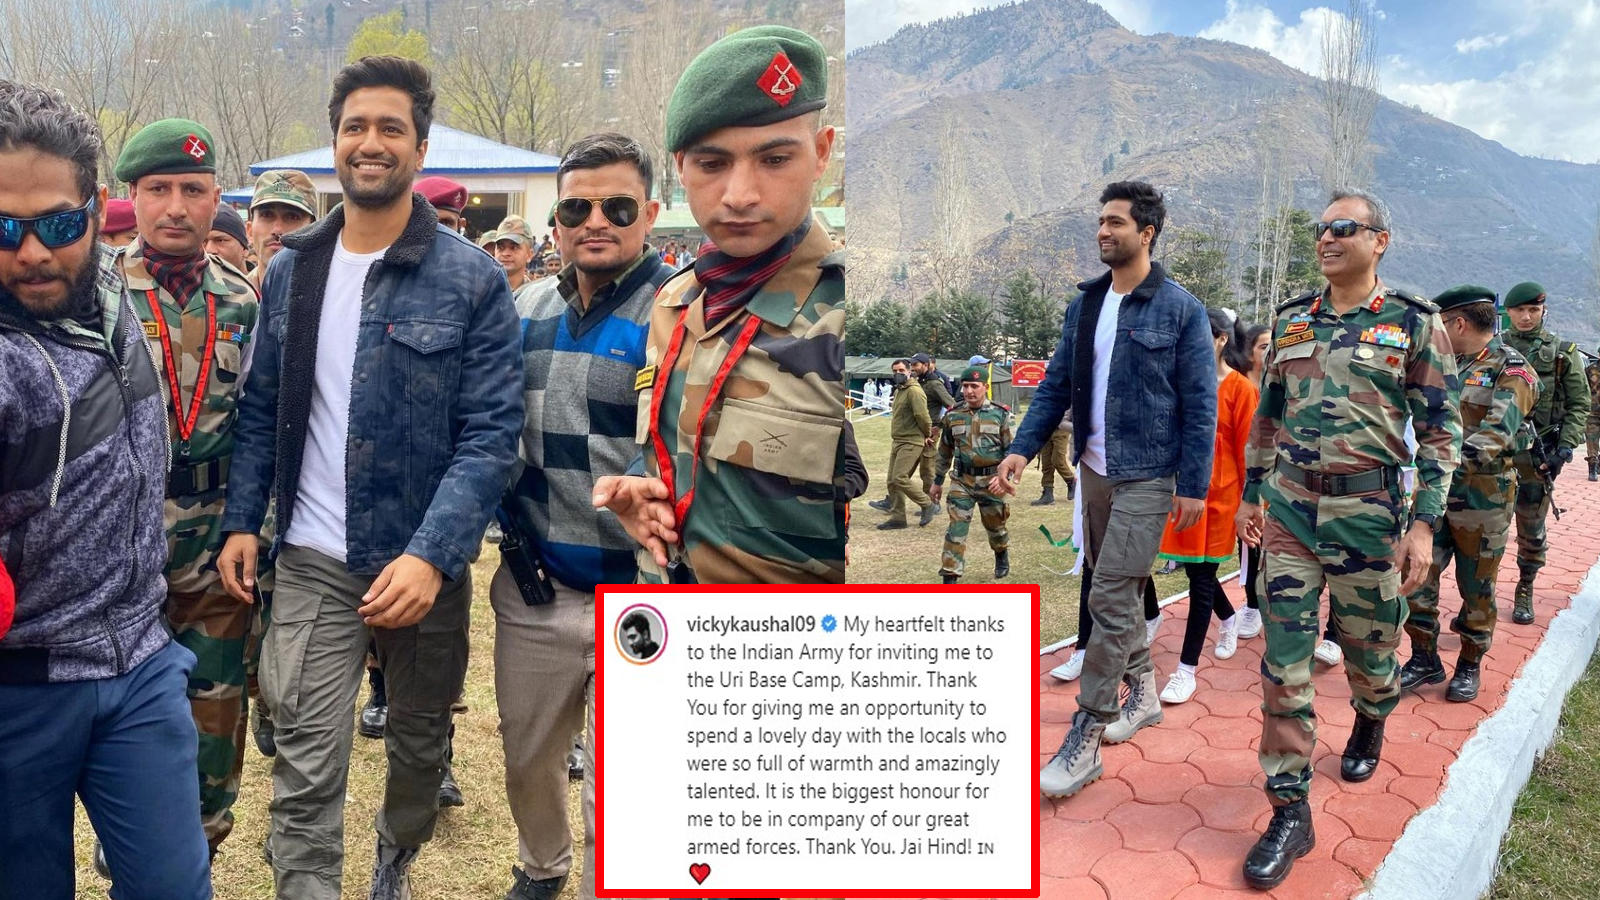 vicky-kaushal-shares-pictures-from-his-recent-visit-to-uri-base-camp-in-kashmir-expresses-gratitude-to-indian-army